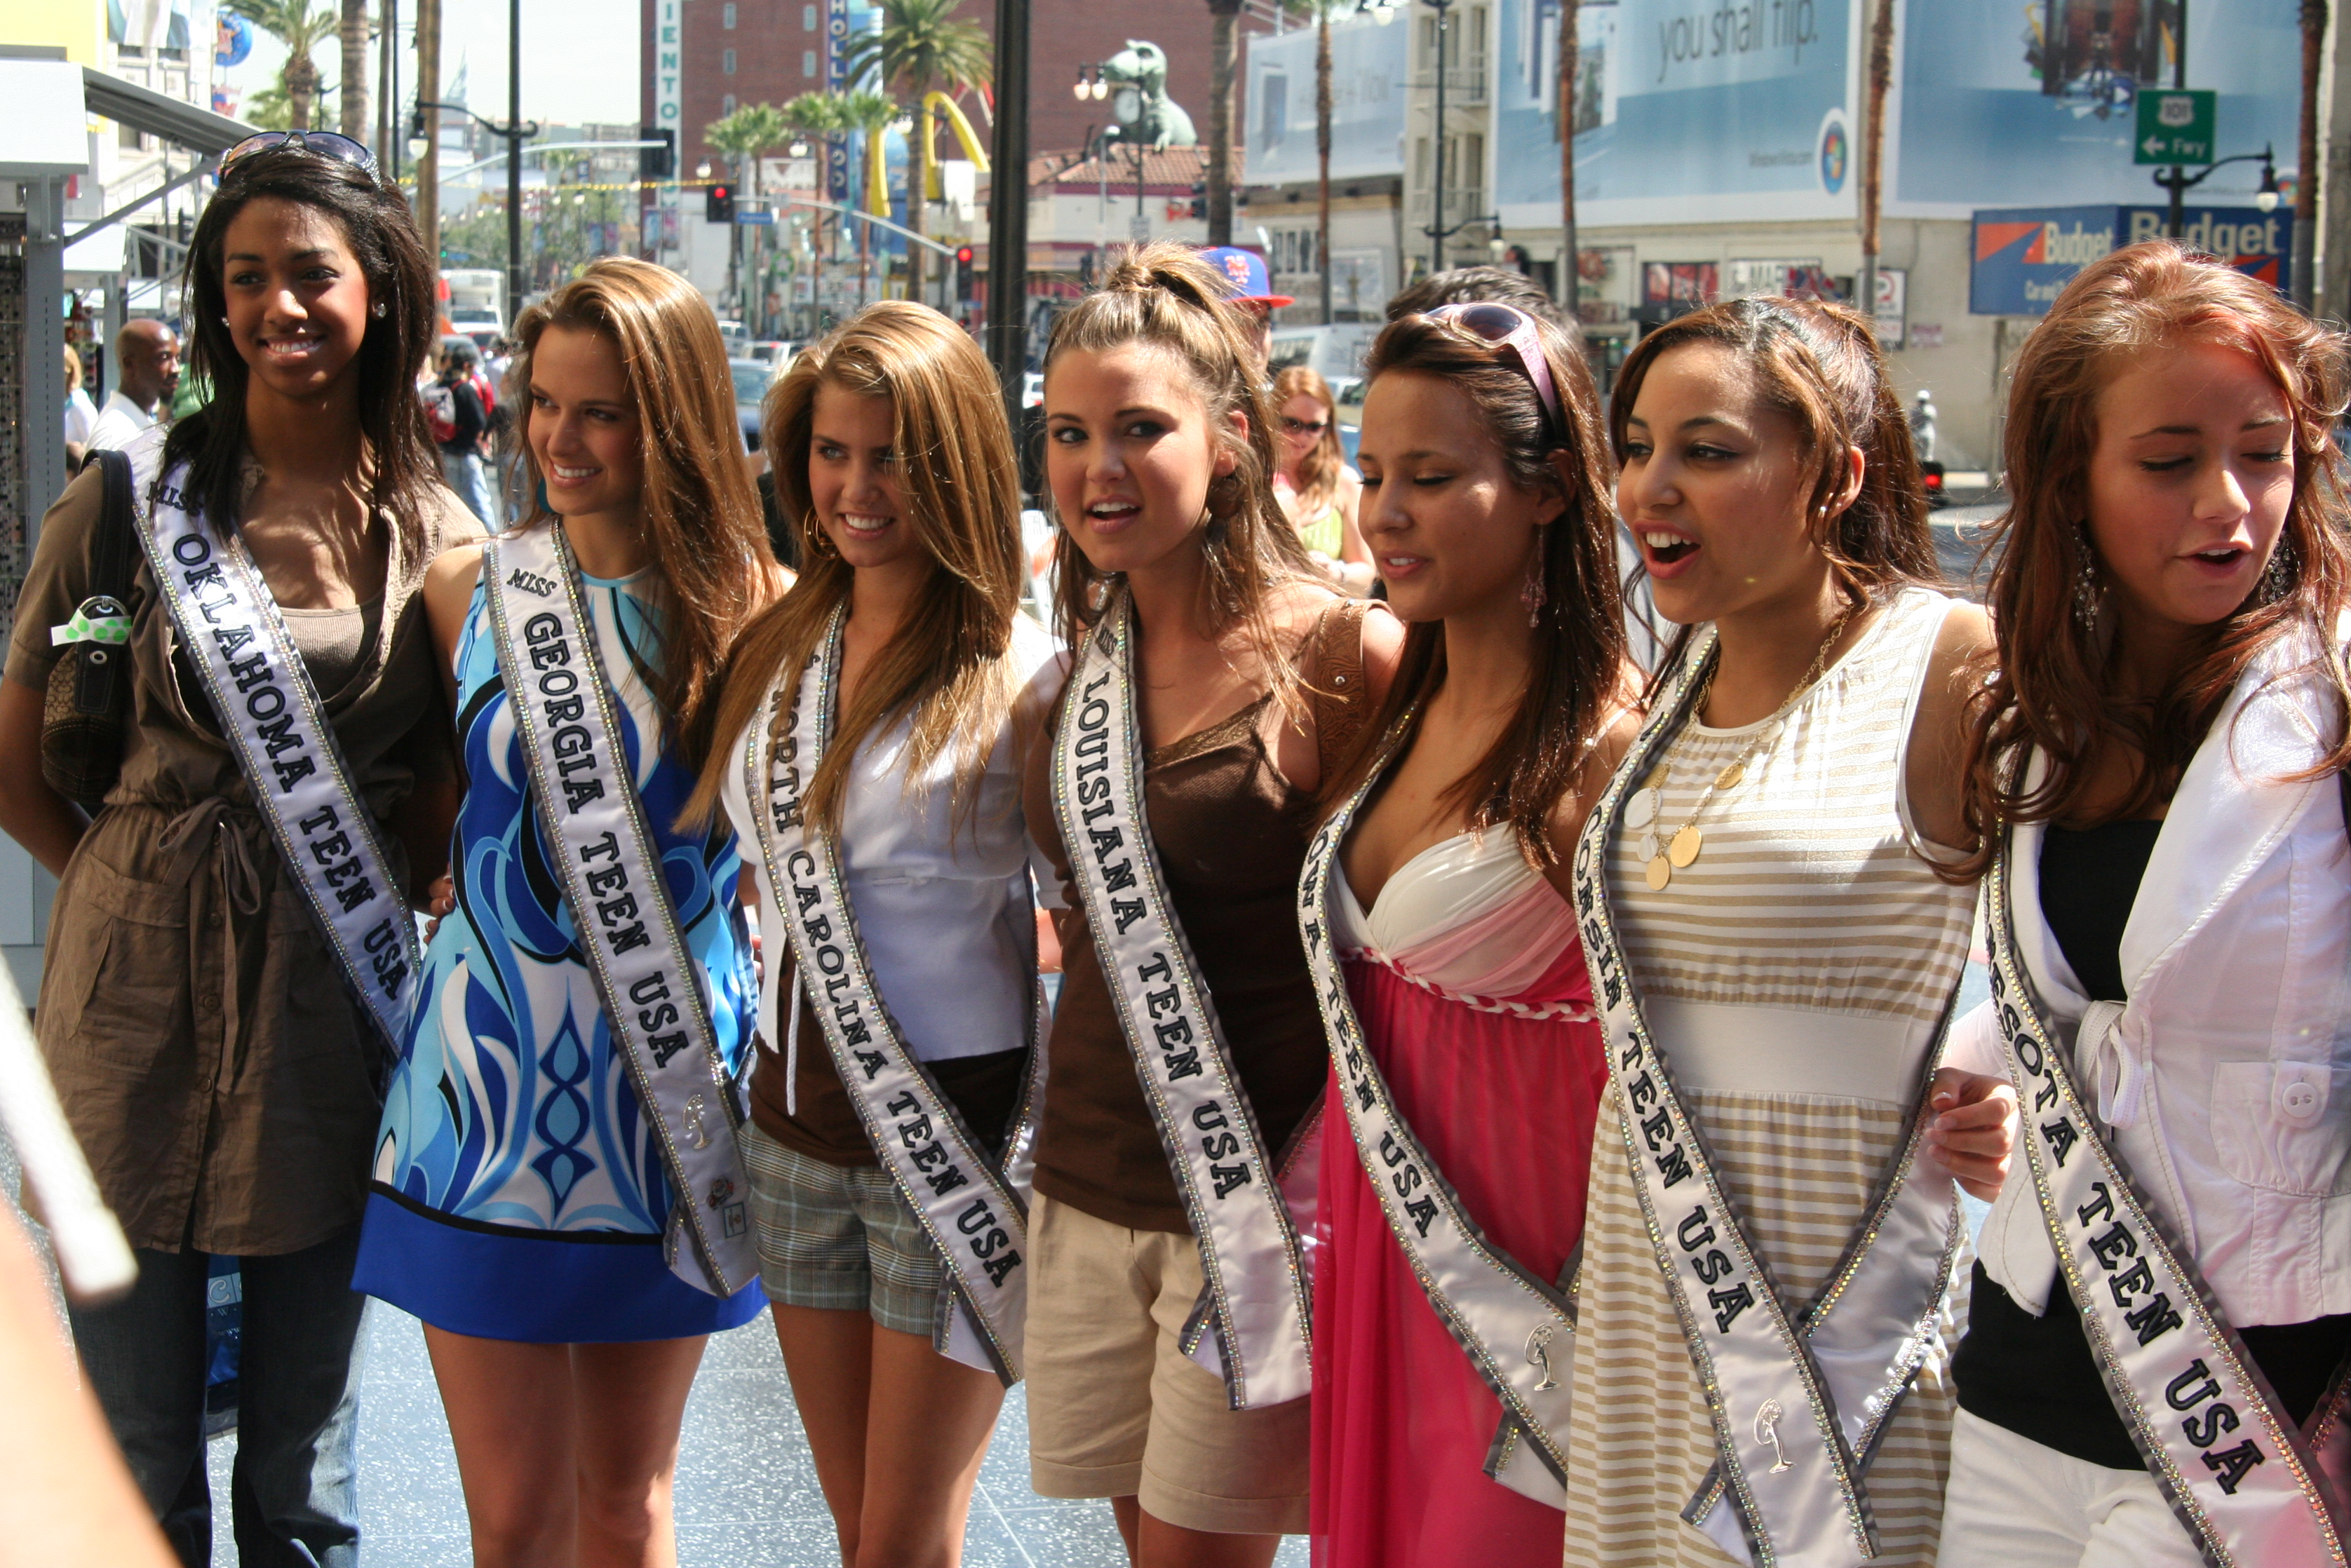 File:Miss Teen USA 2007 delegates Hollywood and Highland March 2007 1.png